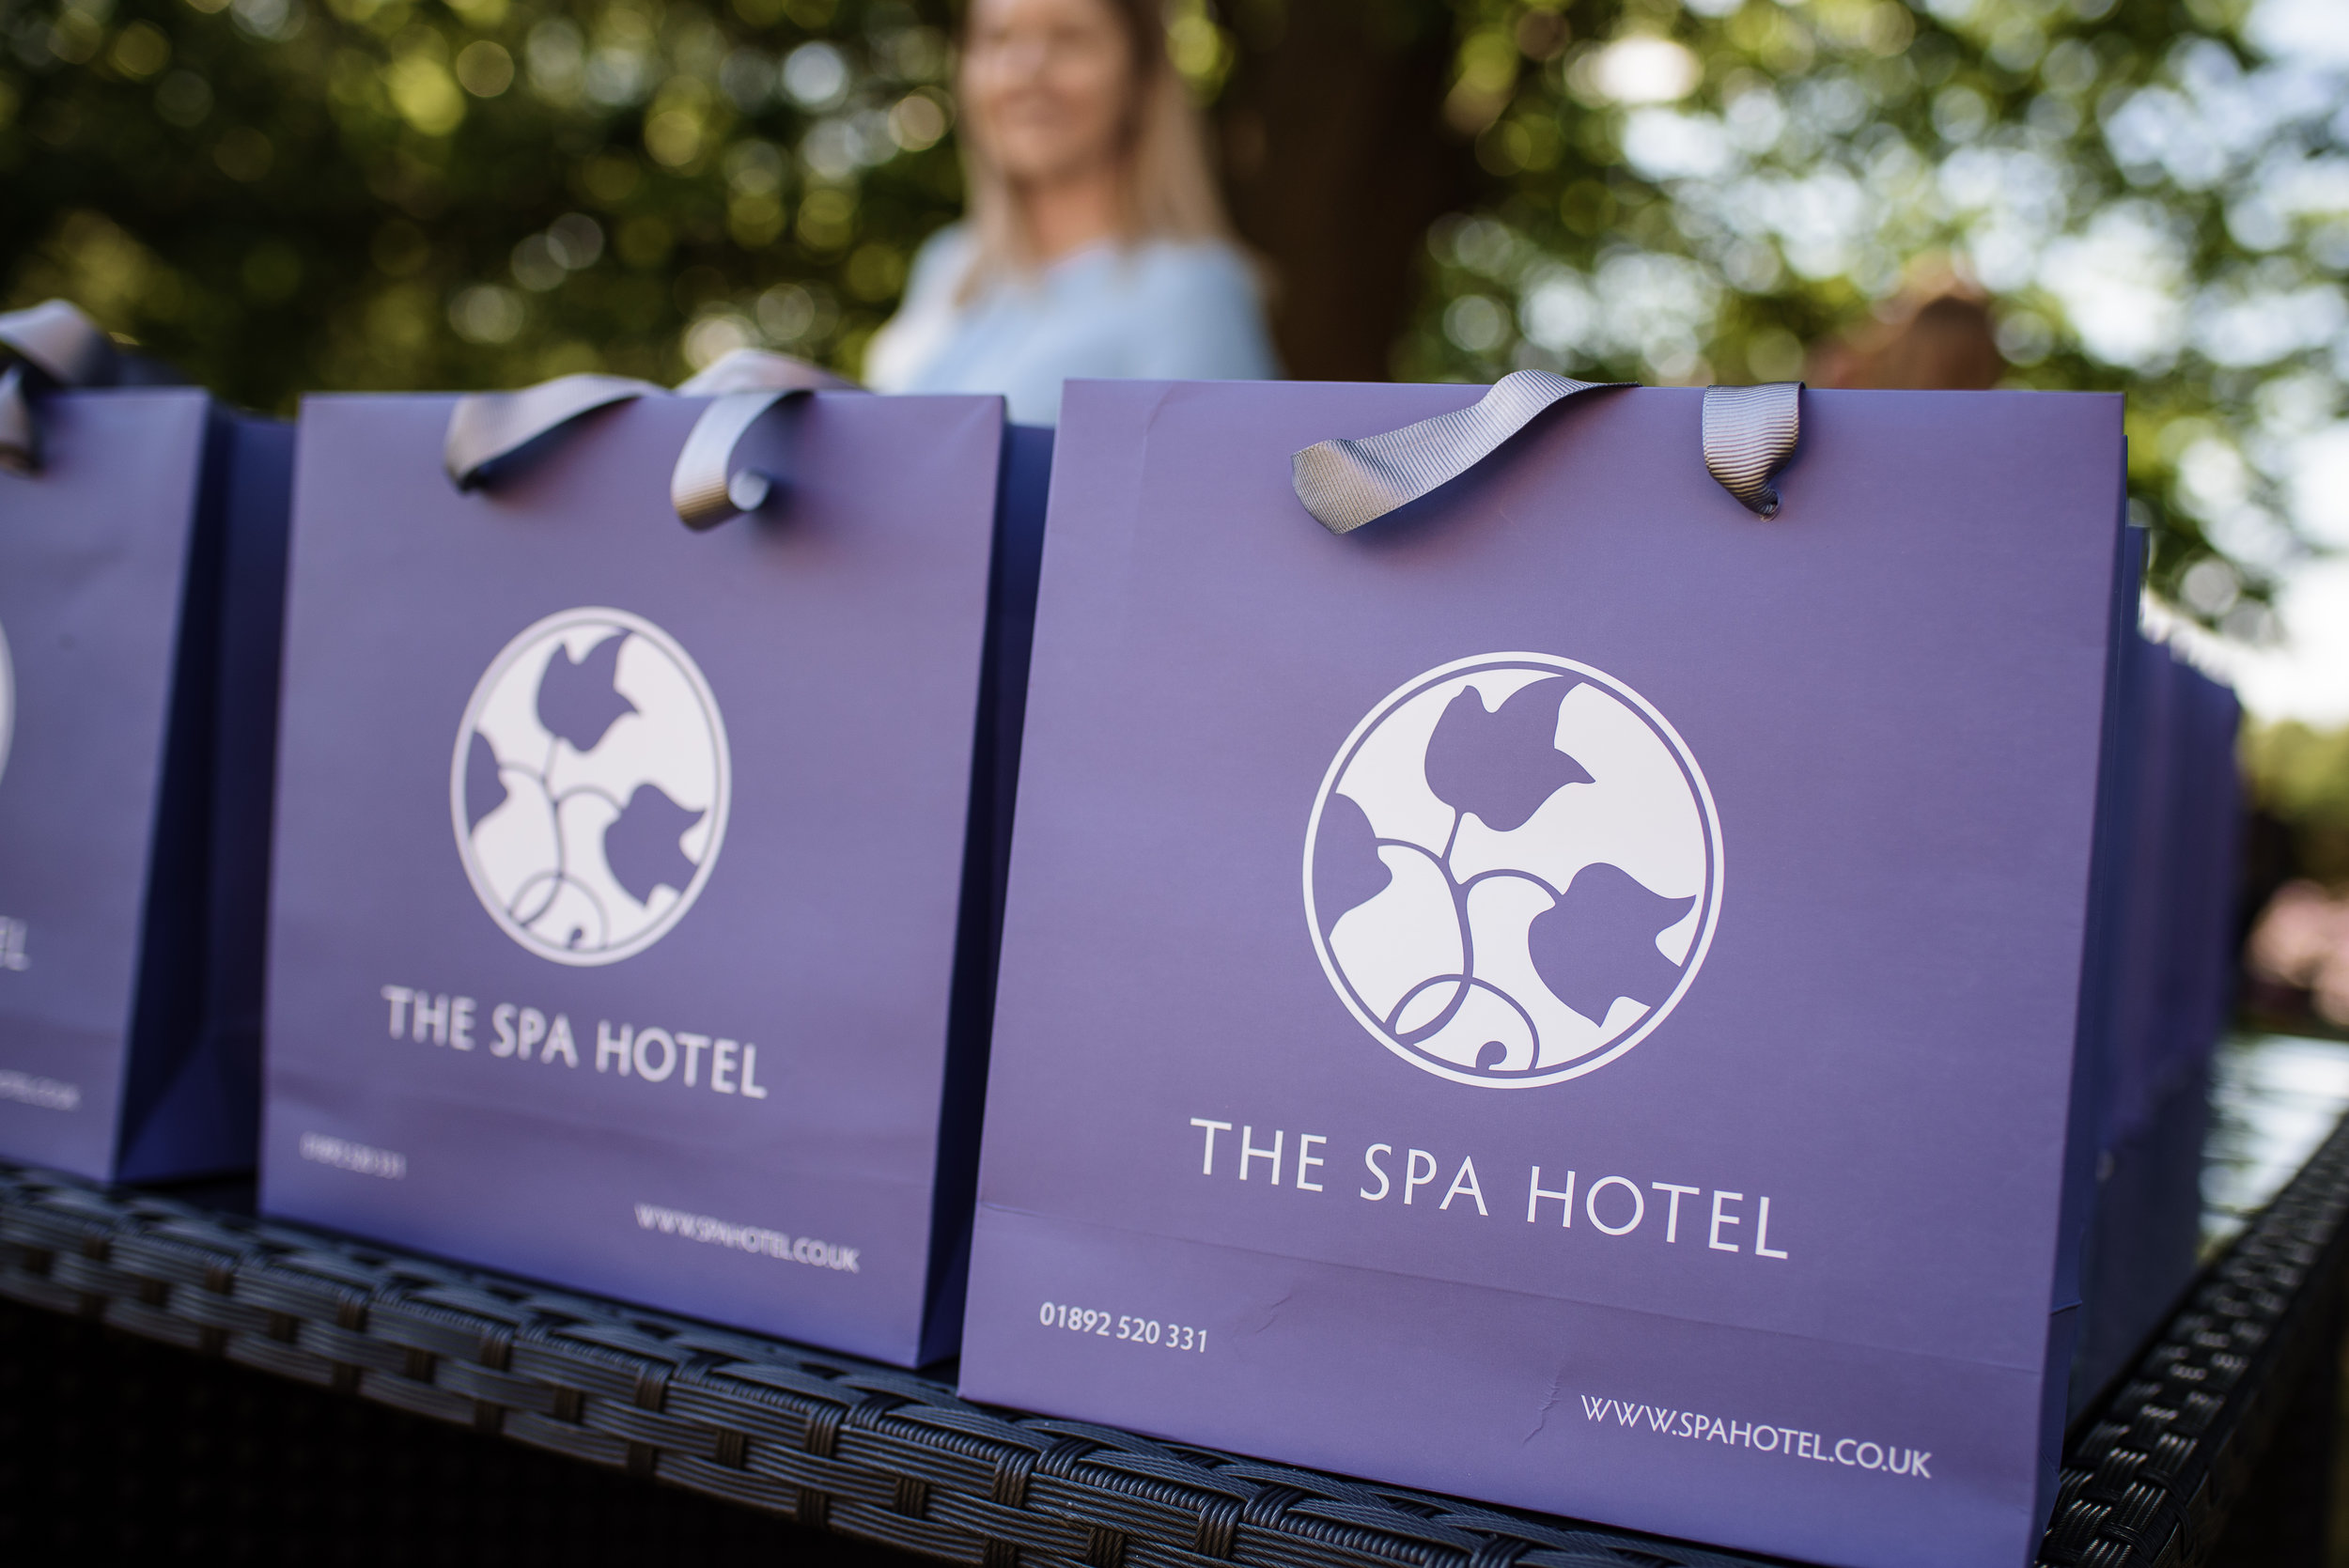 Penny_Young_Photography_Spa_Hotel_Temple_Opening_June_tunbridge-wells-support-local-magazine2019_001.jpg